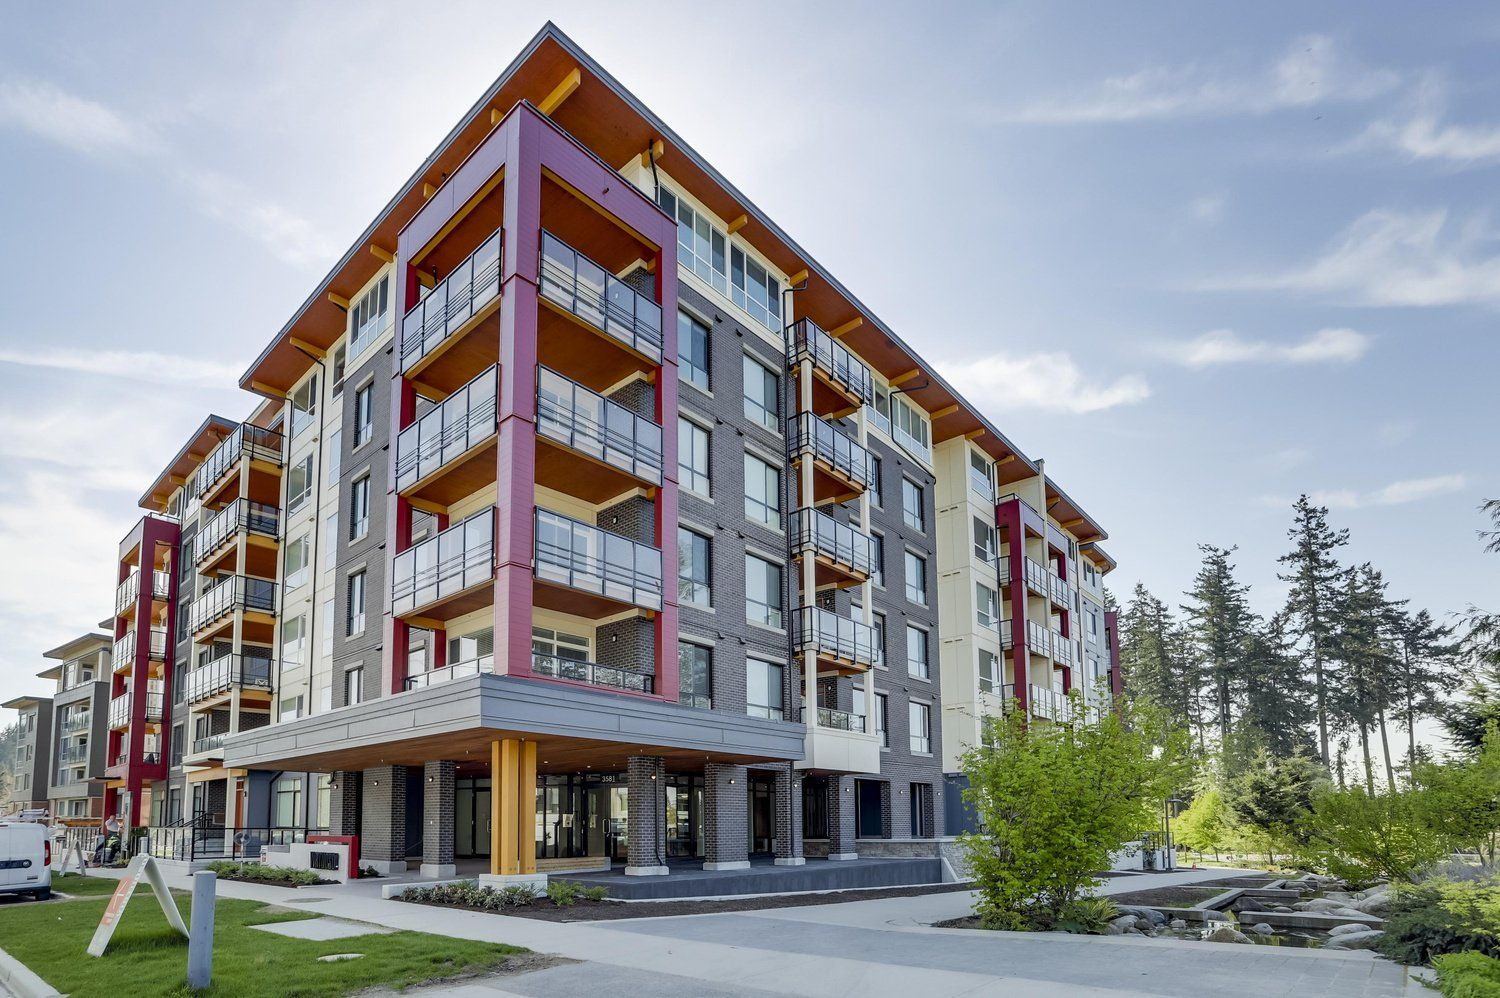 Main Photo: 3581 Ross Drive in Vancouver: University VW Condo for rent (Vancouver West)  : MLS®# AR115